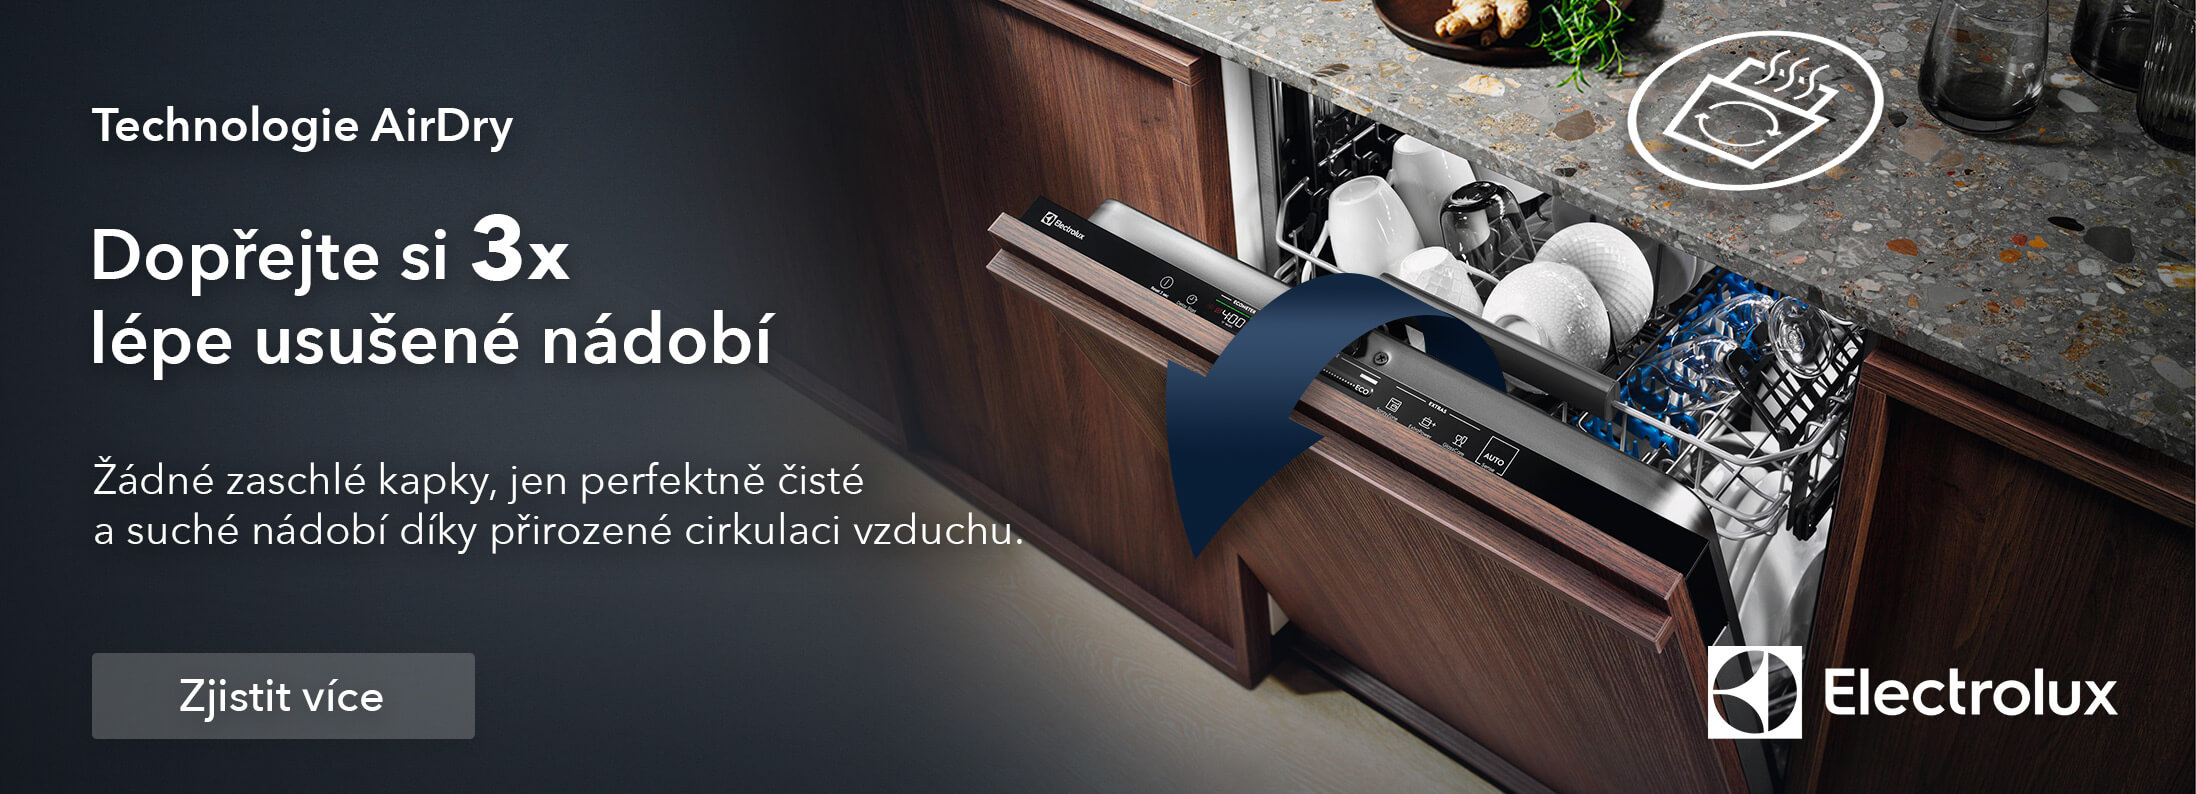 Electrolux - Technologie AirDry